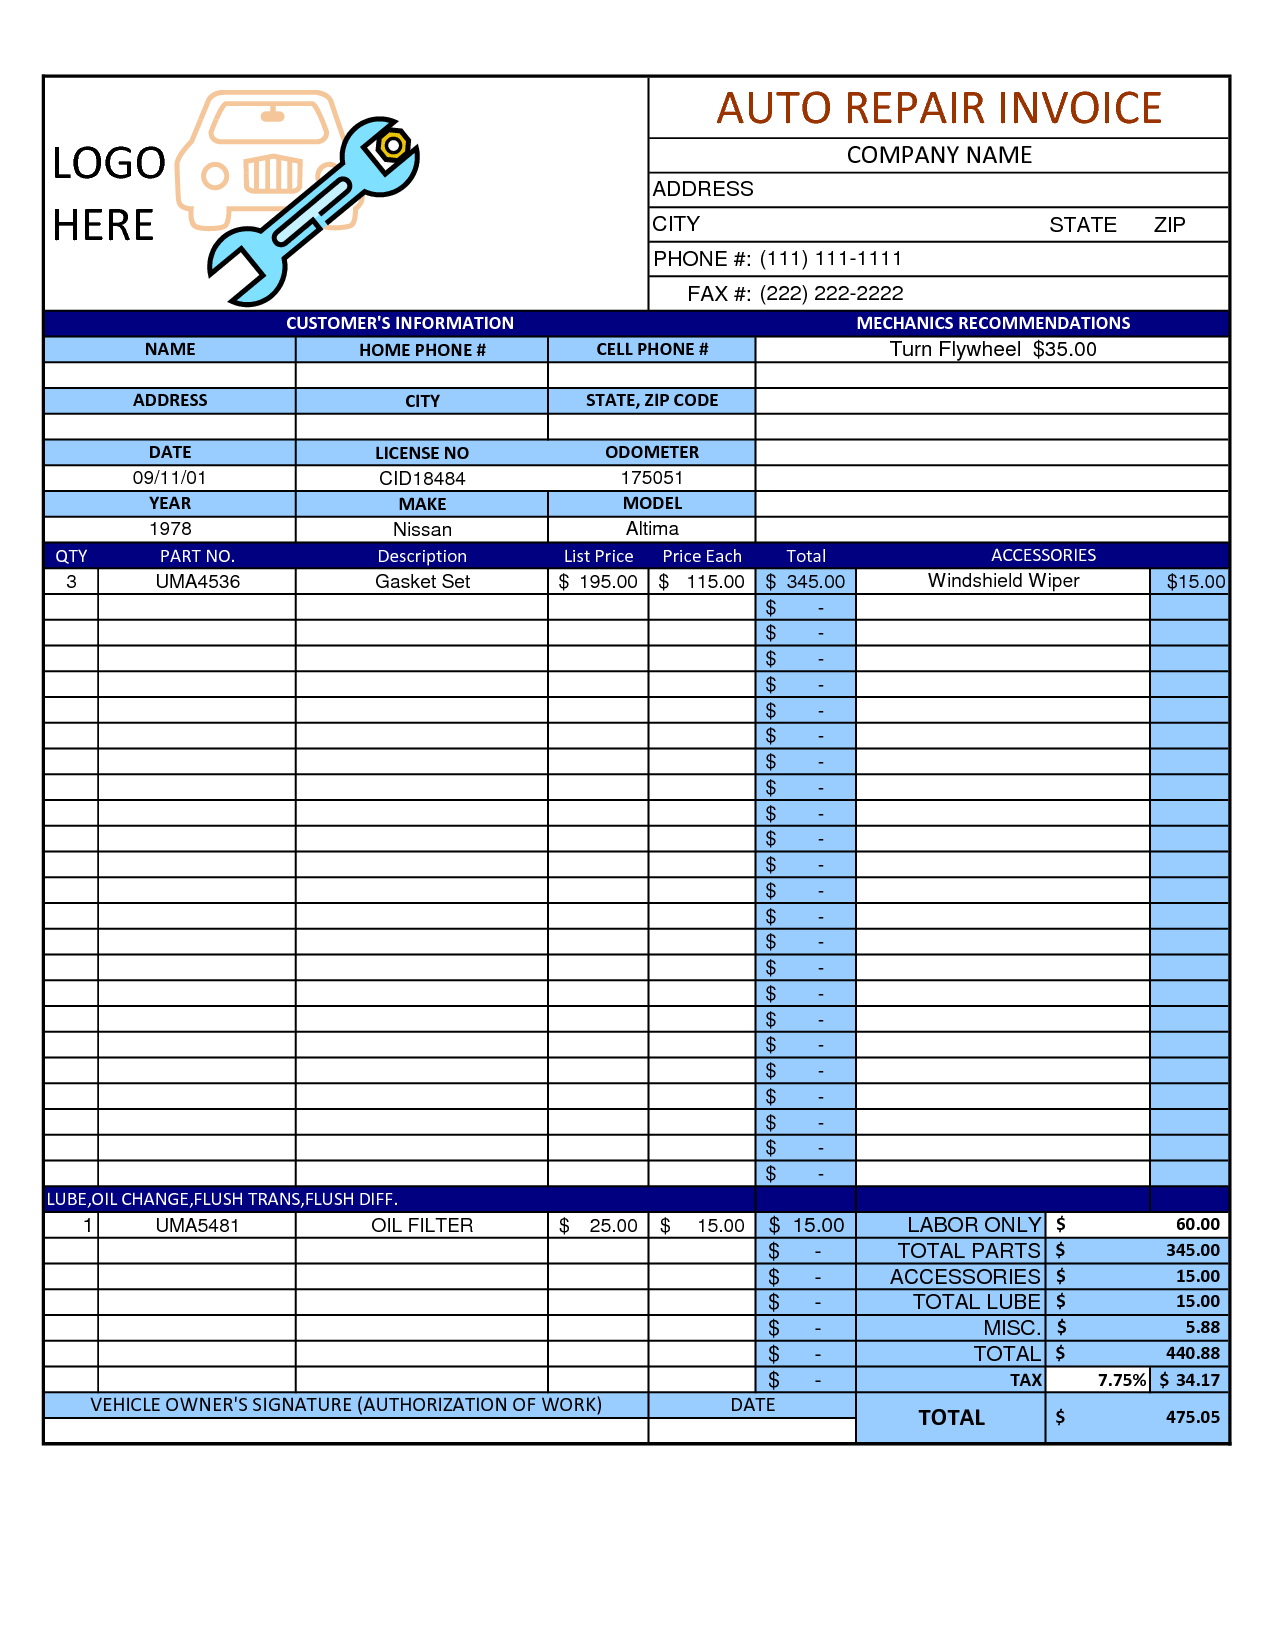 Exceptional Auto Repair Invoice Template Word